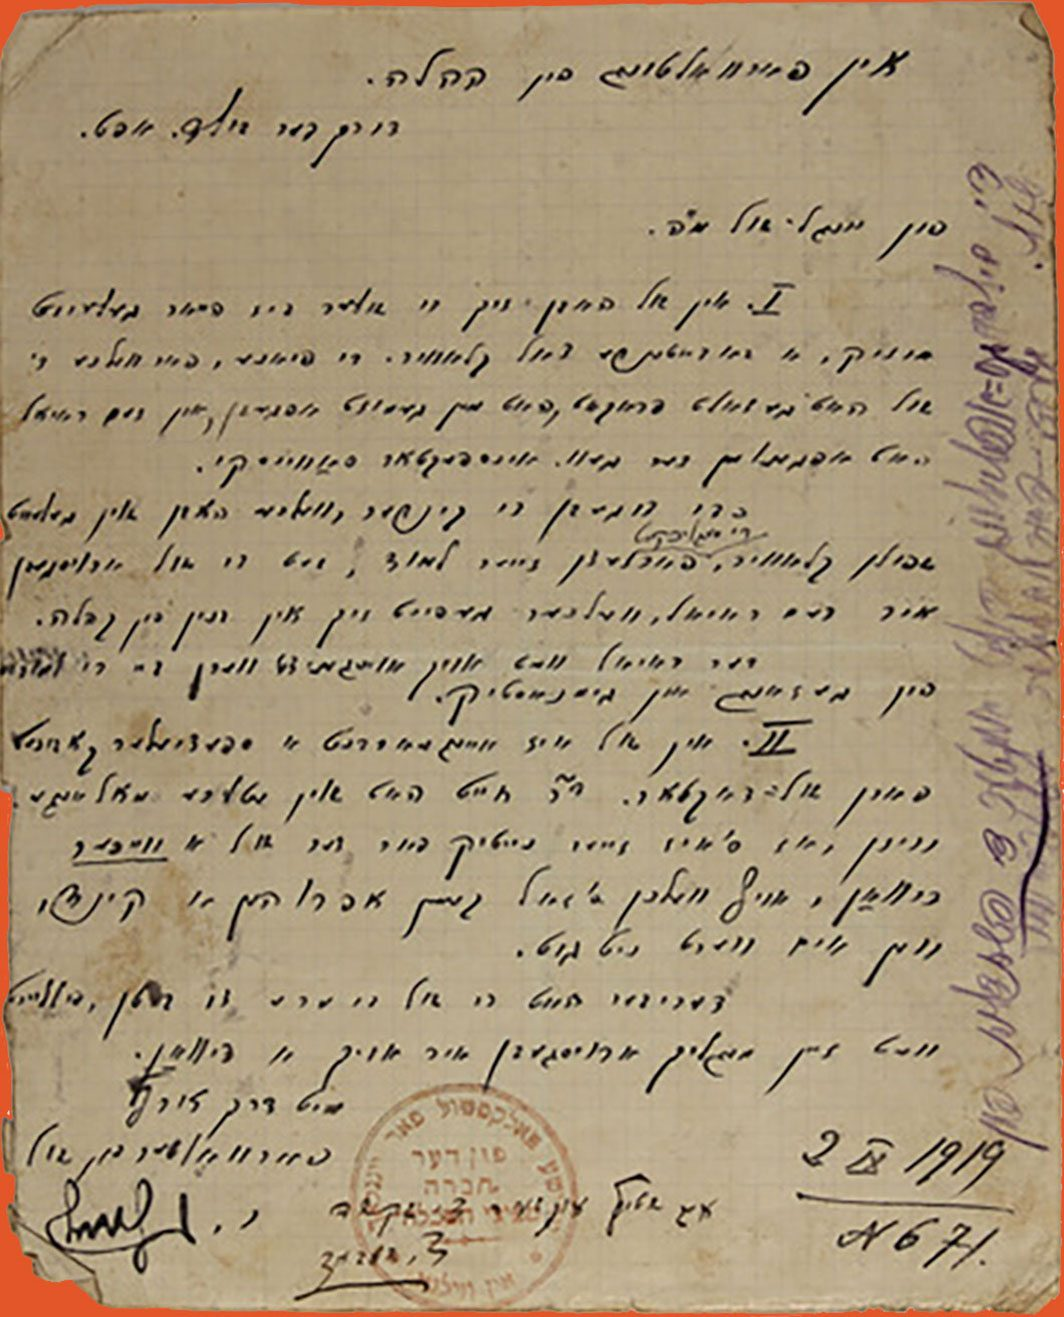 Handwritten letter requesting items for a school